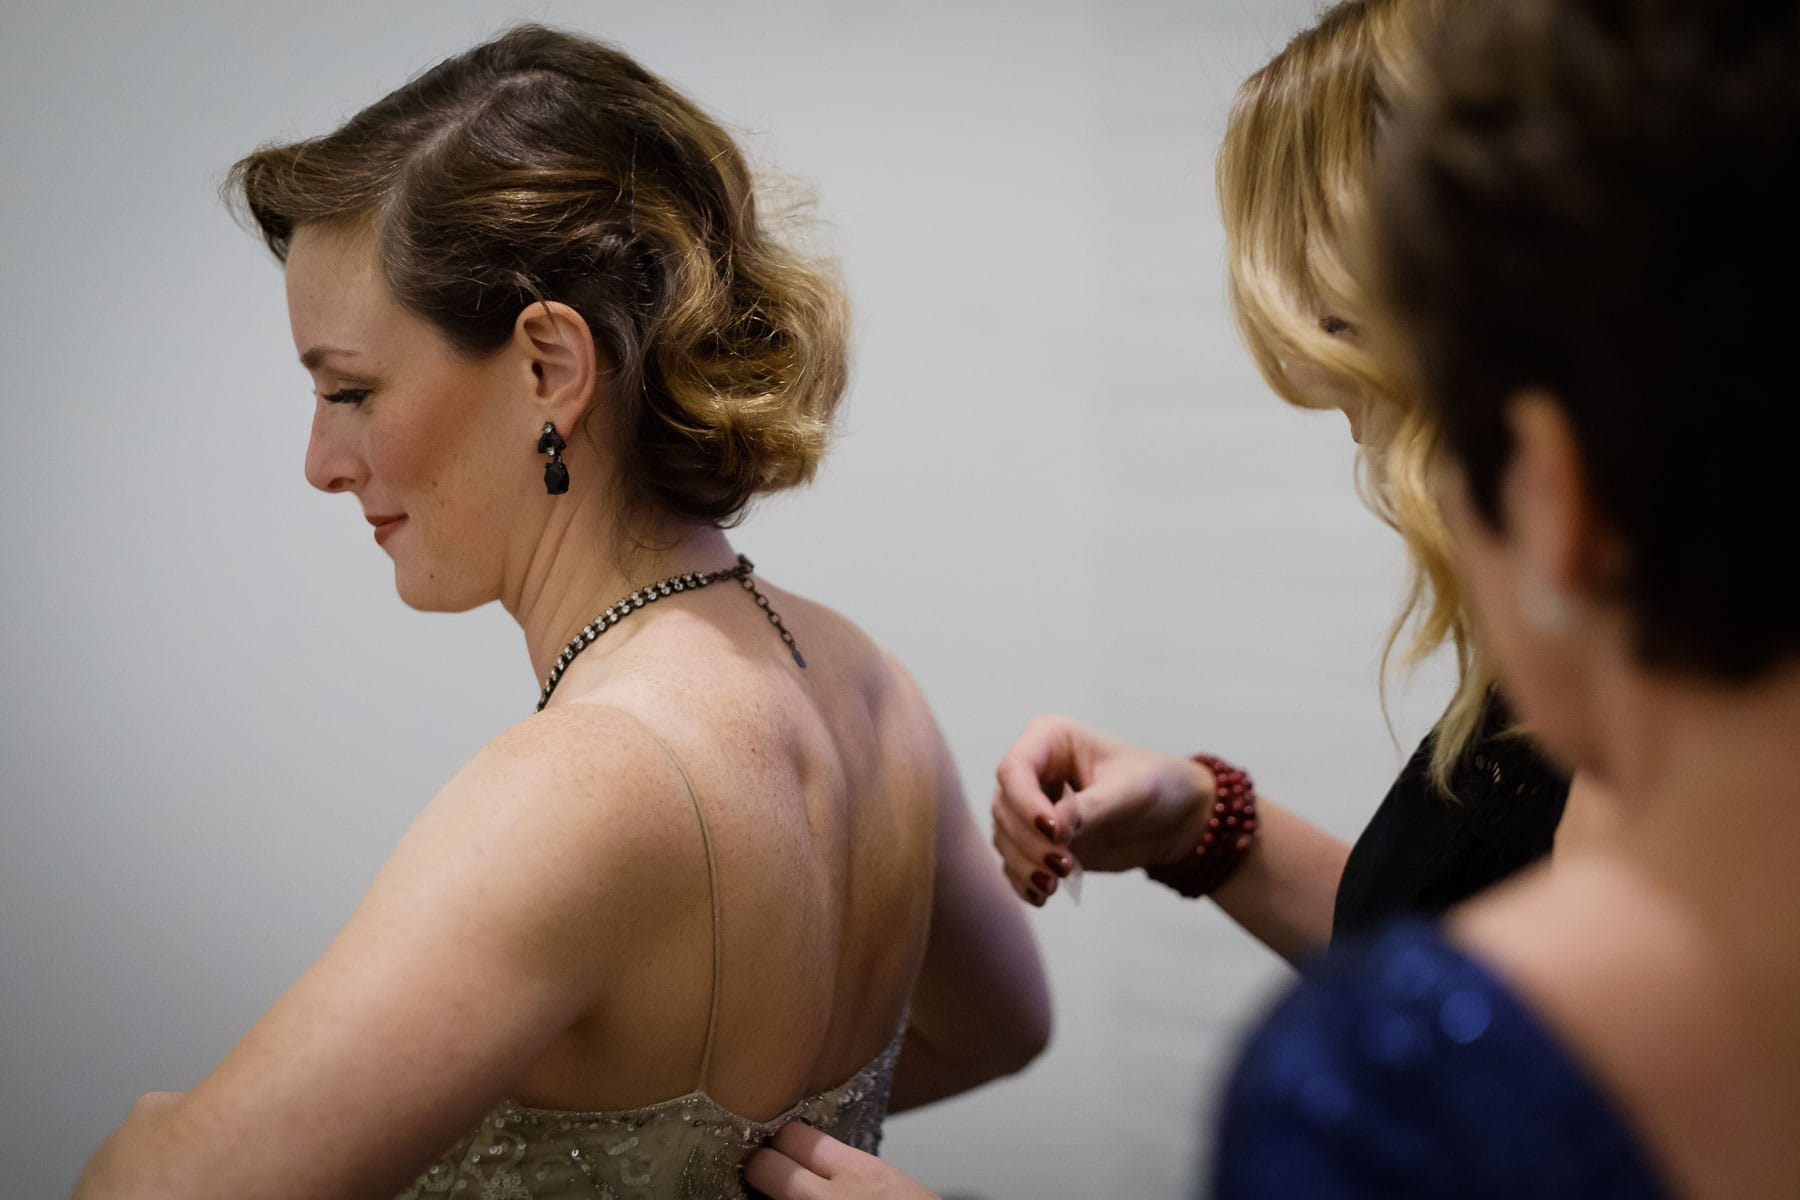 Bride is assisted with her dress by bridesmaids in the bridal suite at The Burroughes building wedding.